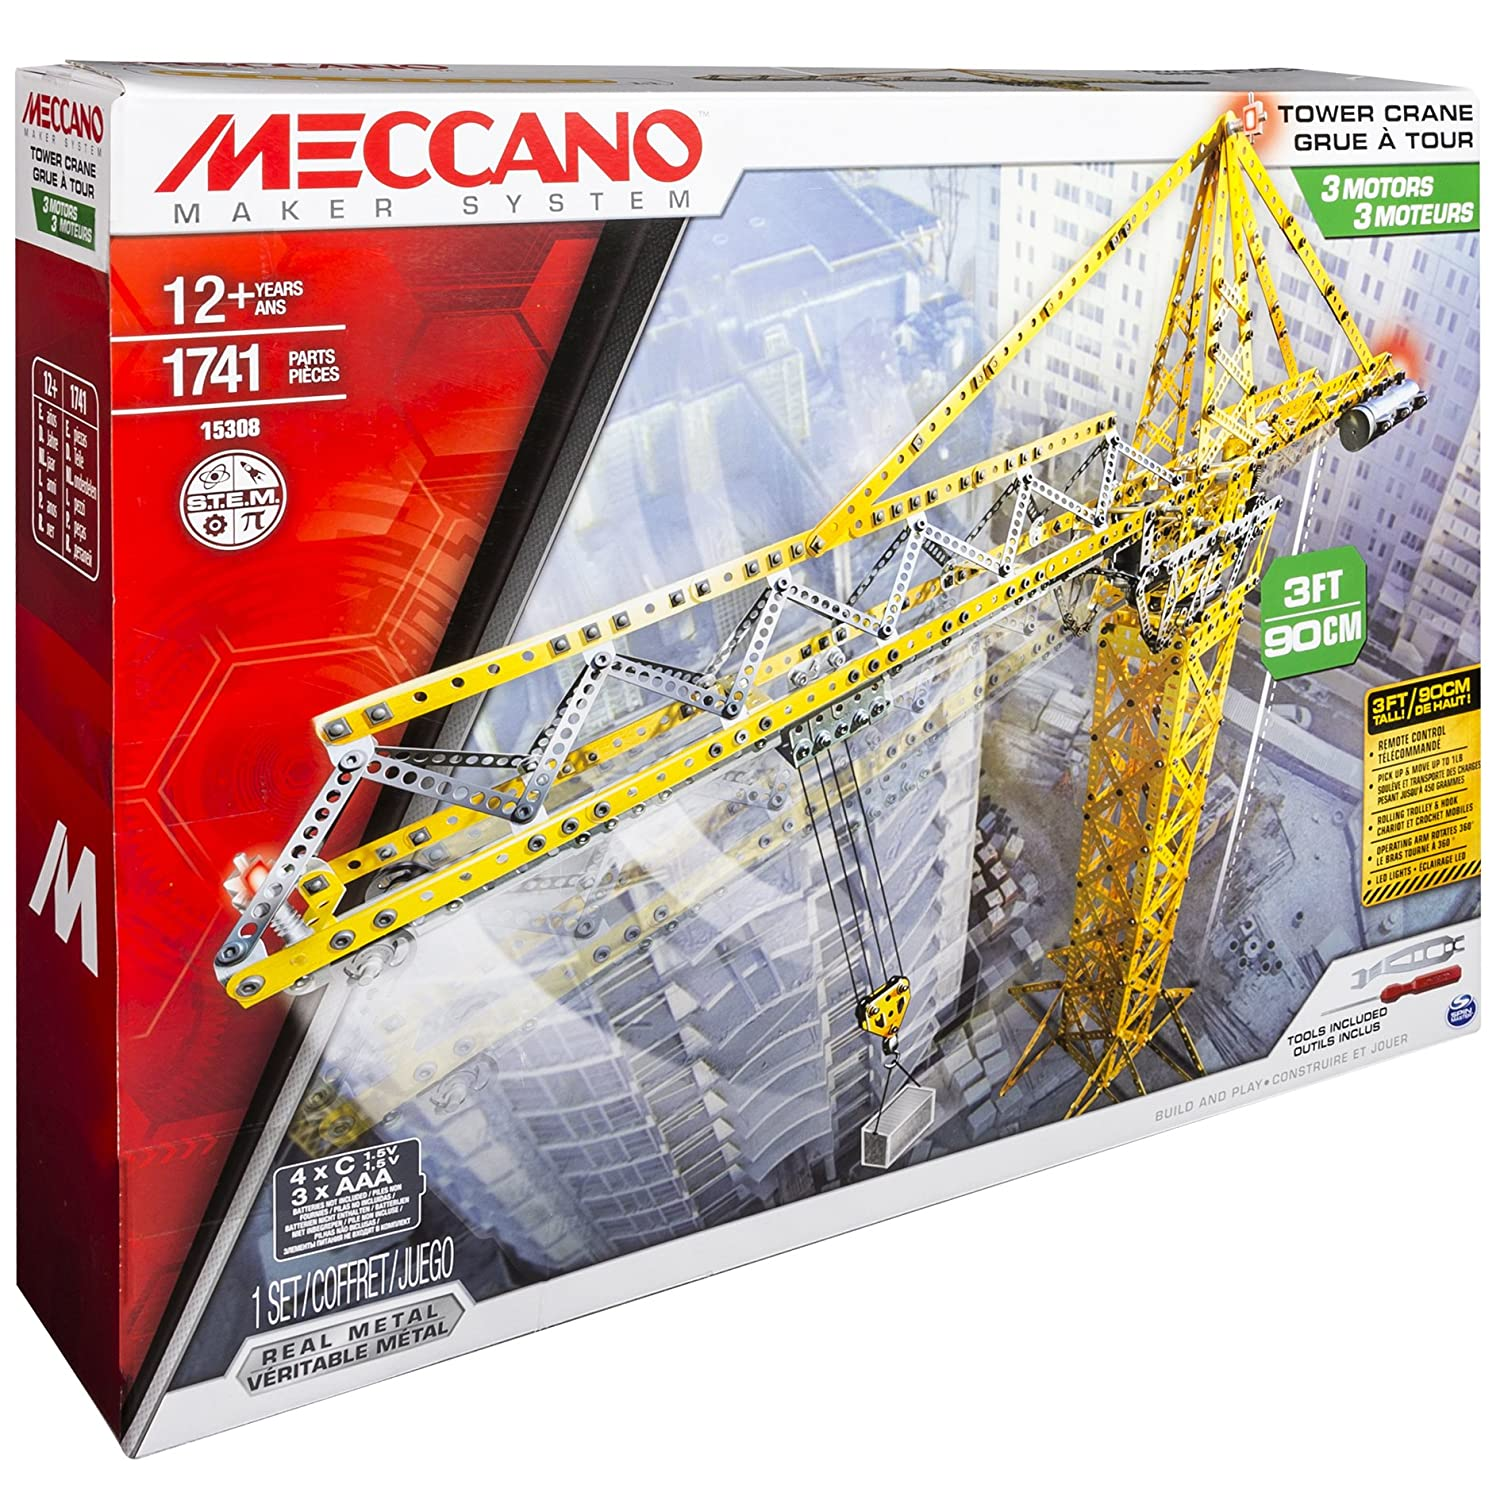 Meccano Motorised Tower Crane Construction Set With Remote M6024905 Motor Reversing Switches Electronics In Toys Games